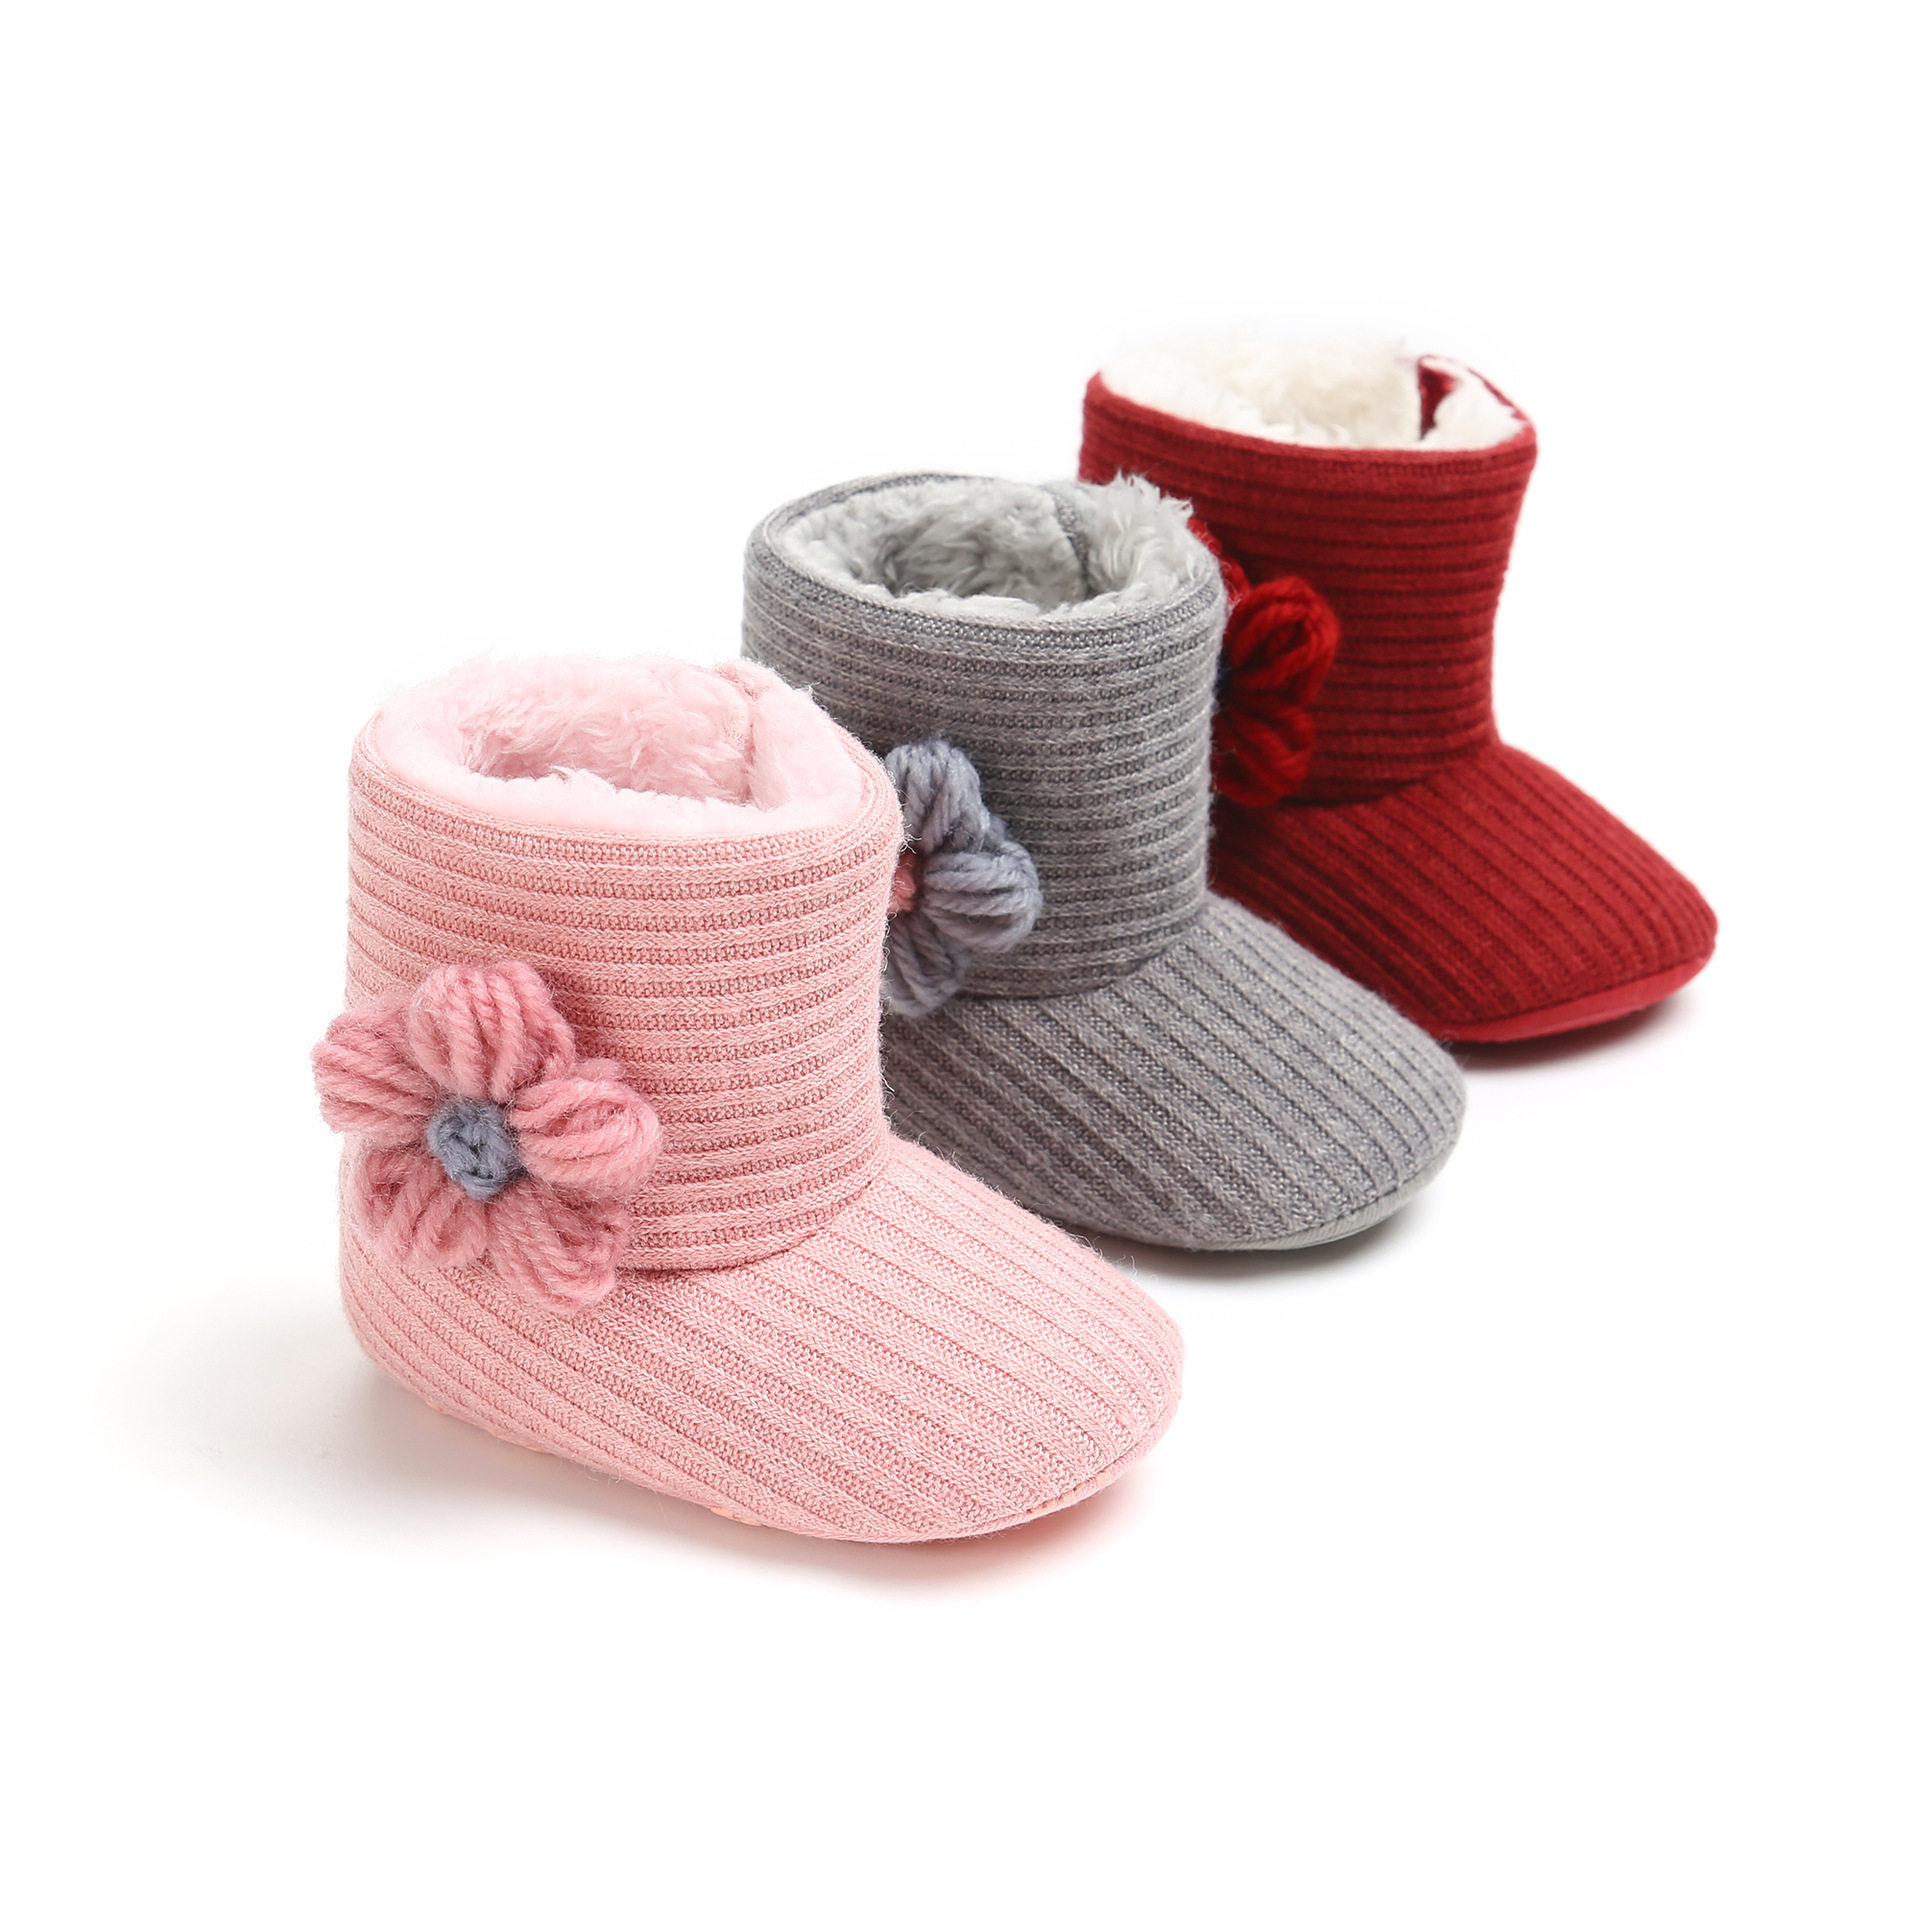 Baby Bowknot Soft Sole Winter Warm Woolen Yarn Shoes Boots Non-slip Boots Dropshipping .CX35C